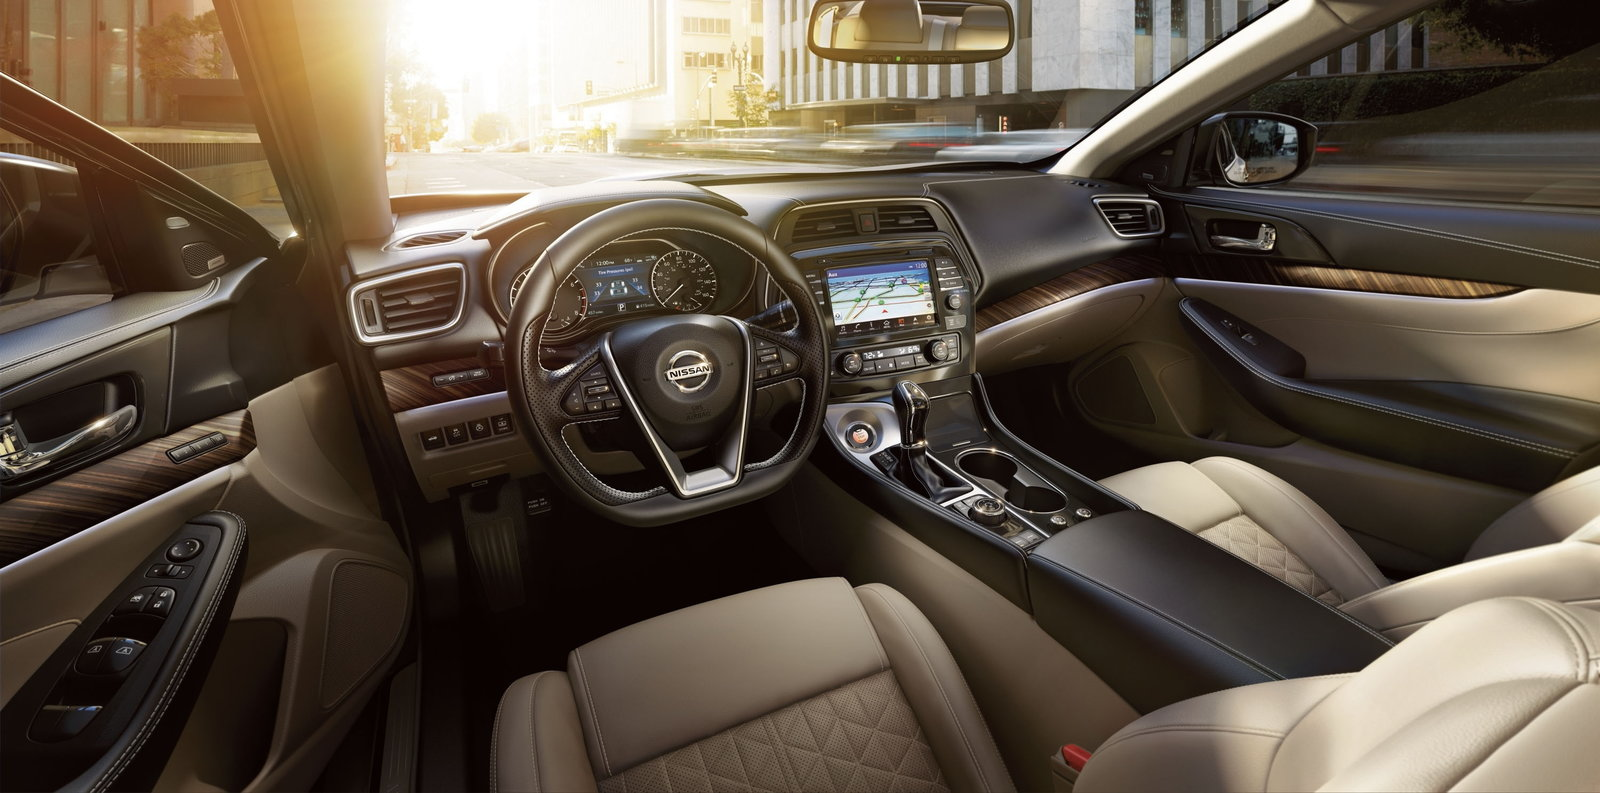 2018 nissan maxima deals prices incentives leases overview carsdirect. Black Bedroom Furniture Sets. Home Design Ideas